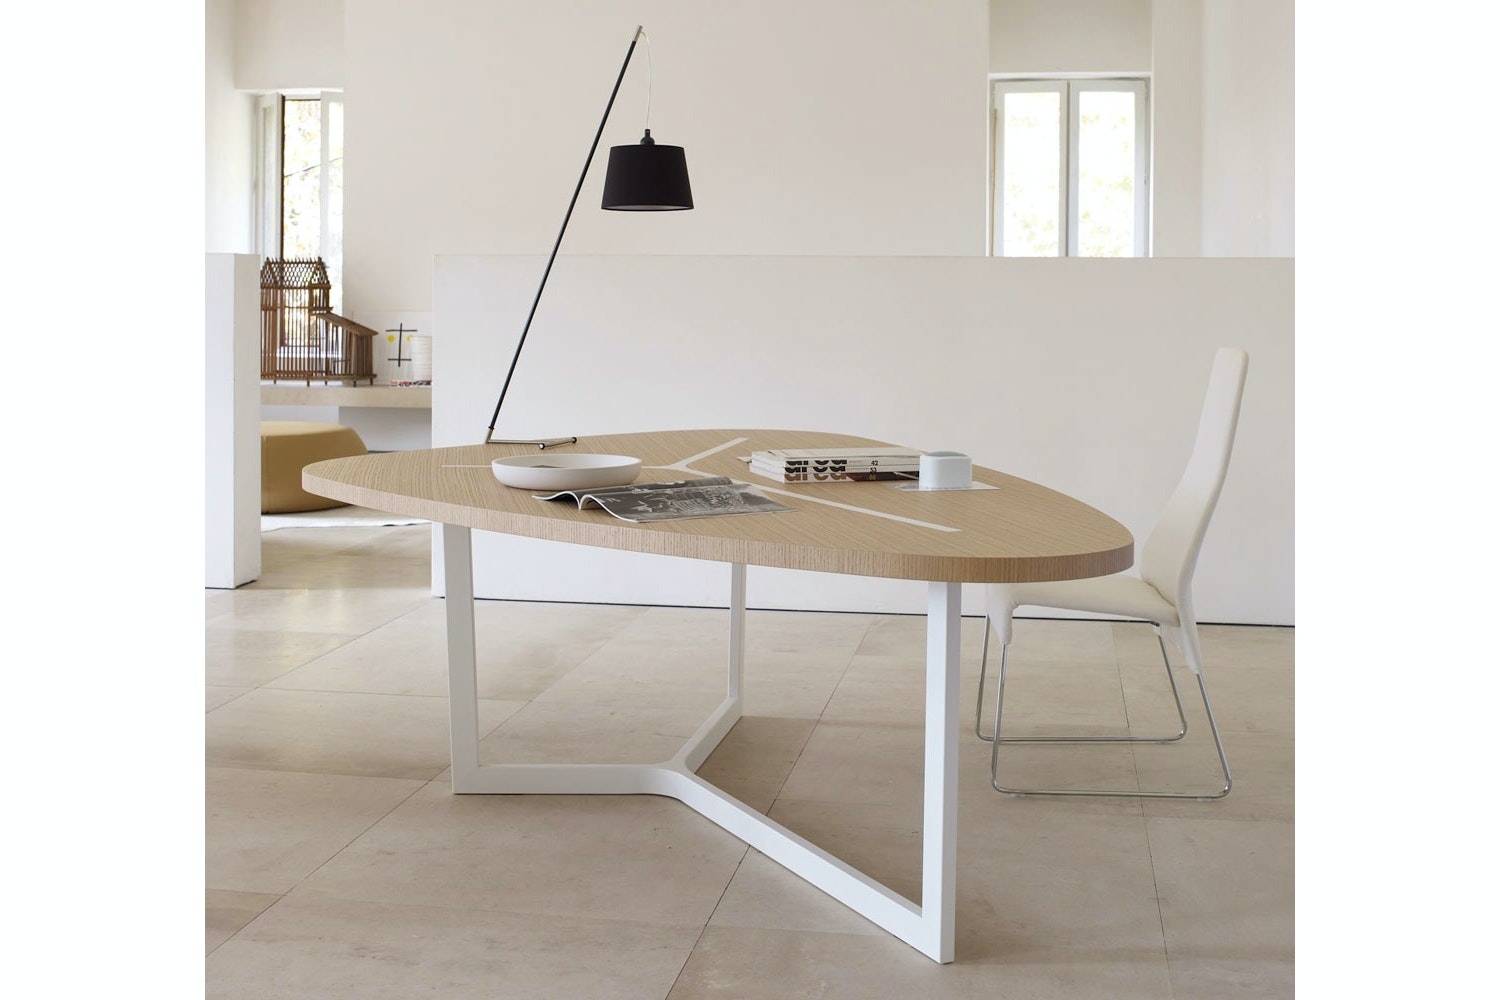 Seven Table in Light Oak by Jean-Marie Massaud for B&B Italia